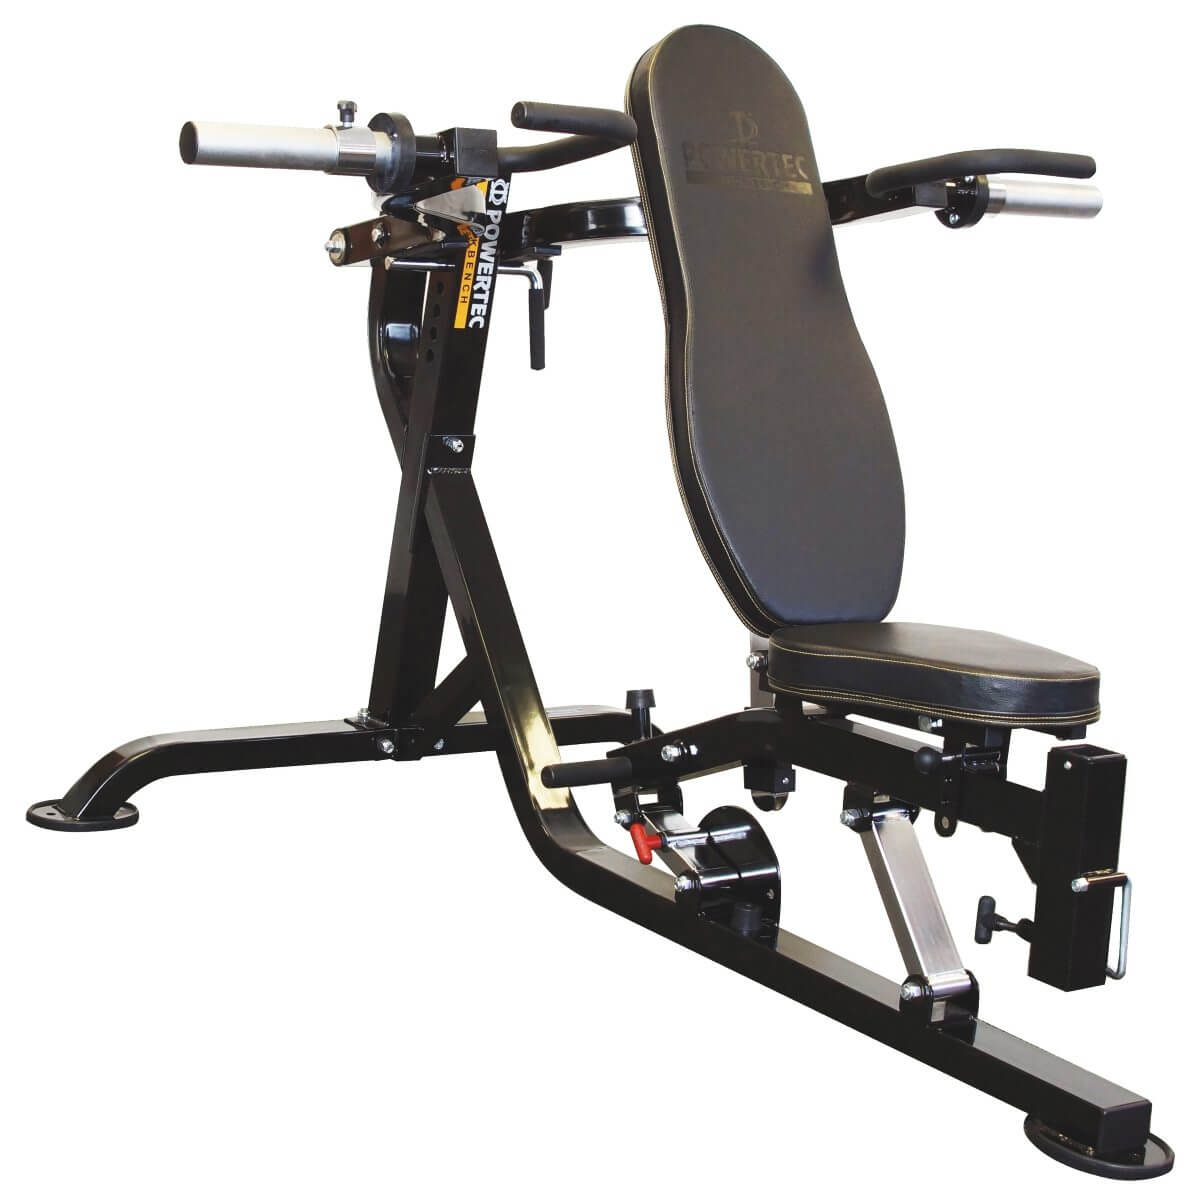 This is the Only Home Gym Fitness Equipment You Need – 3 Machines for Your Workout